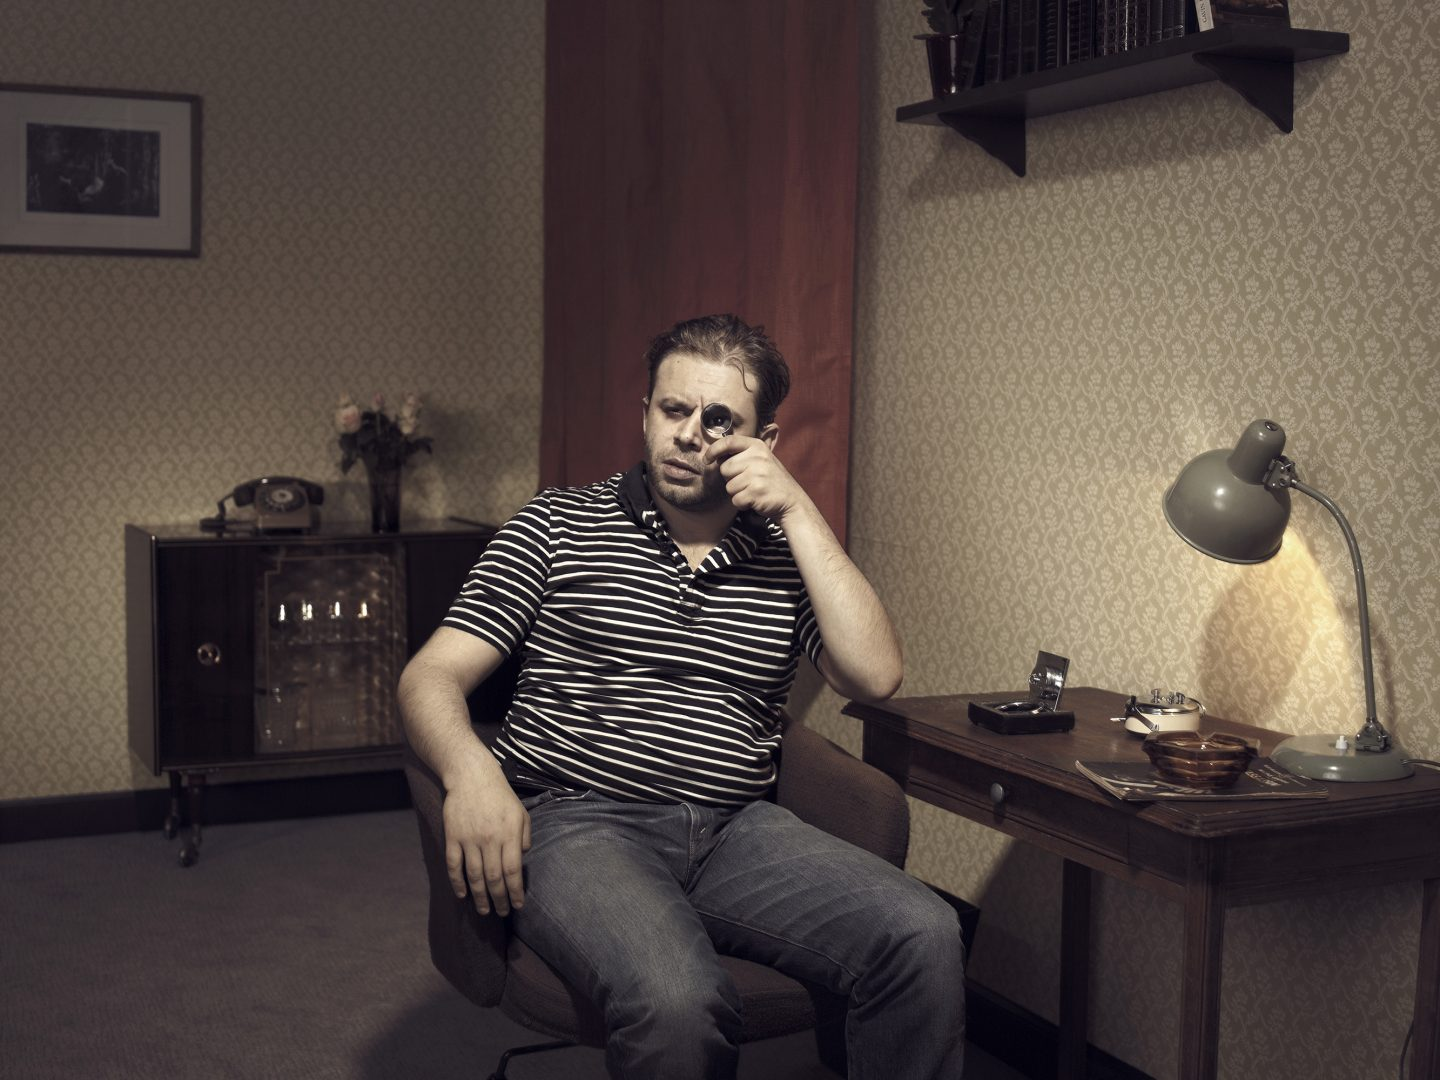 Man looking trough a magnifying glass in room 42 by Stefan Rappo